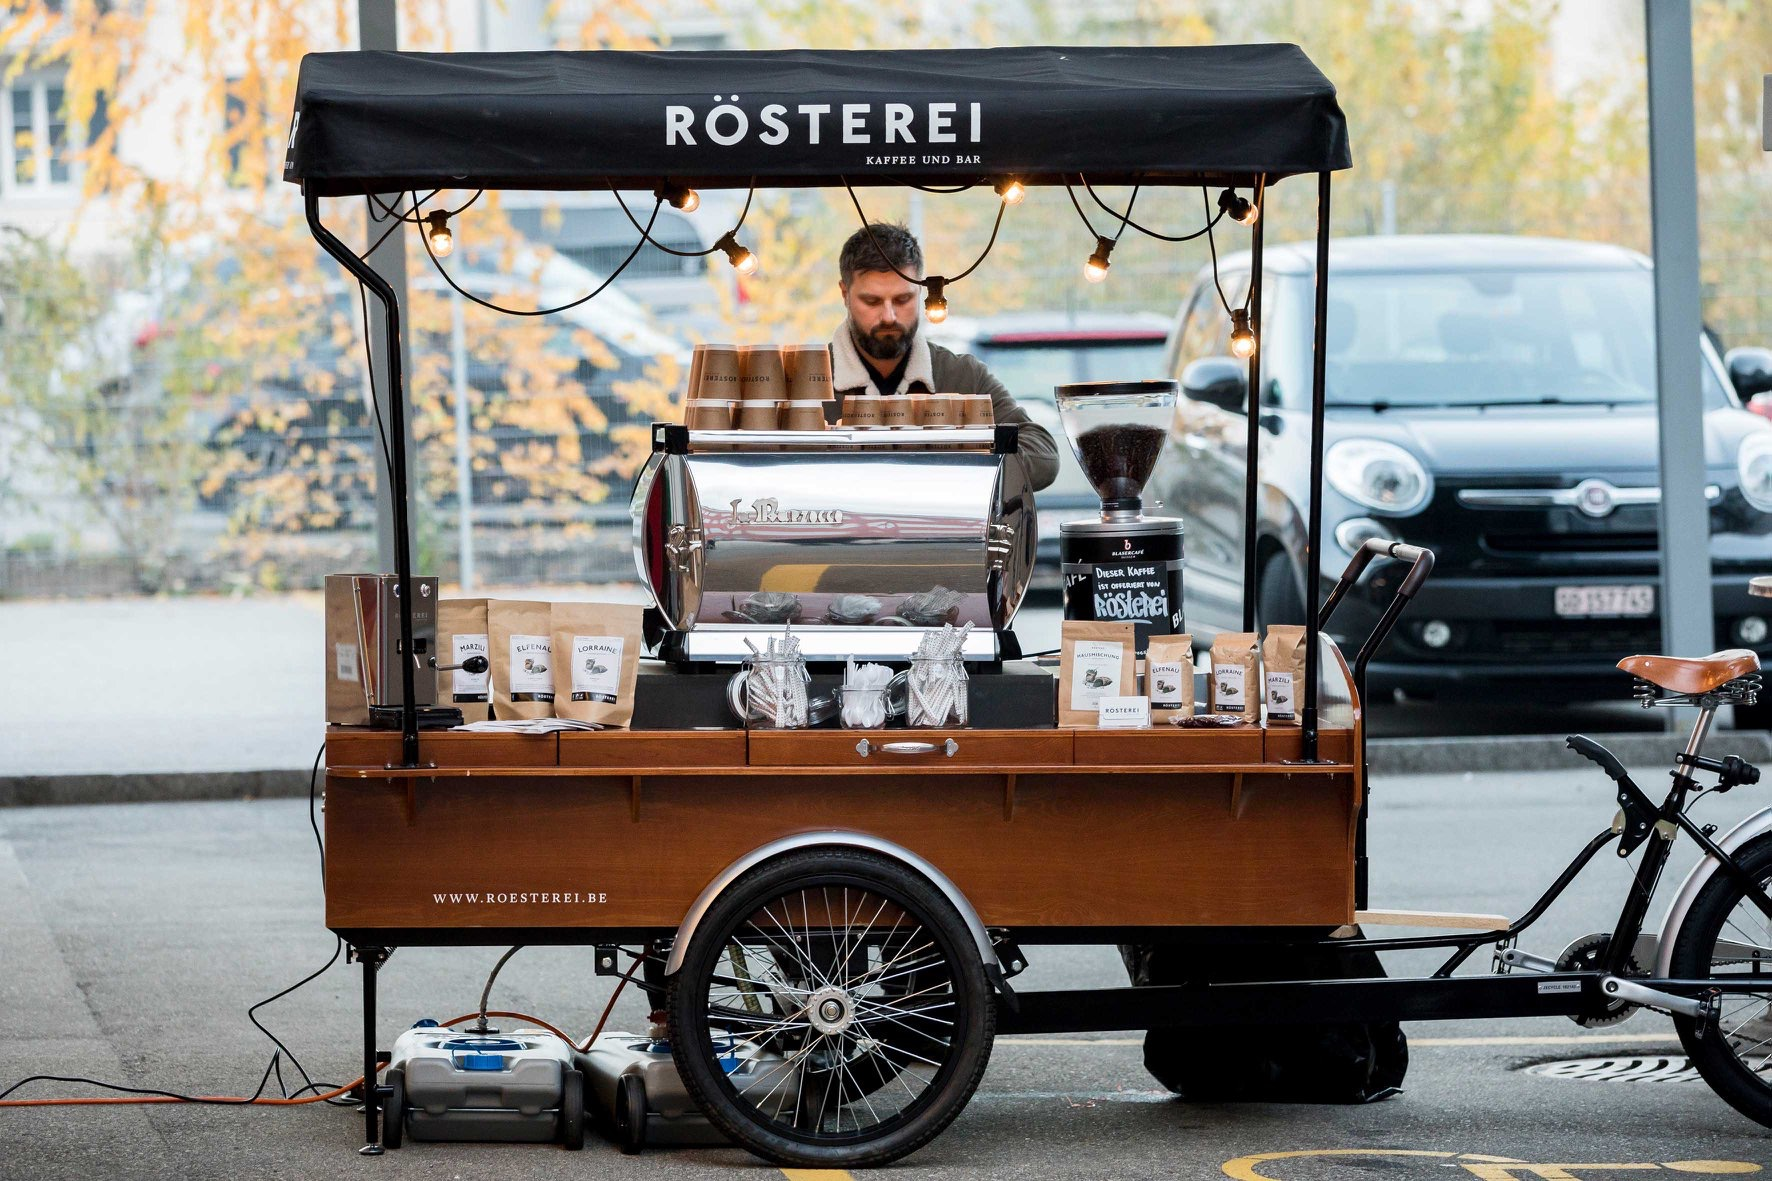 Barista_bike_rent_a_barista_05.jpg